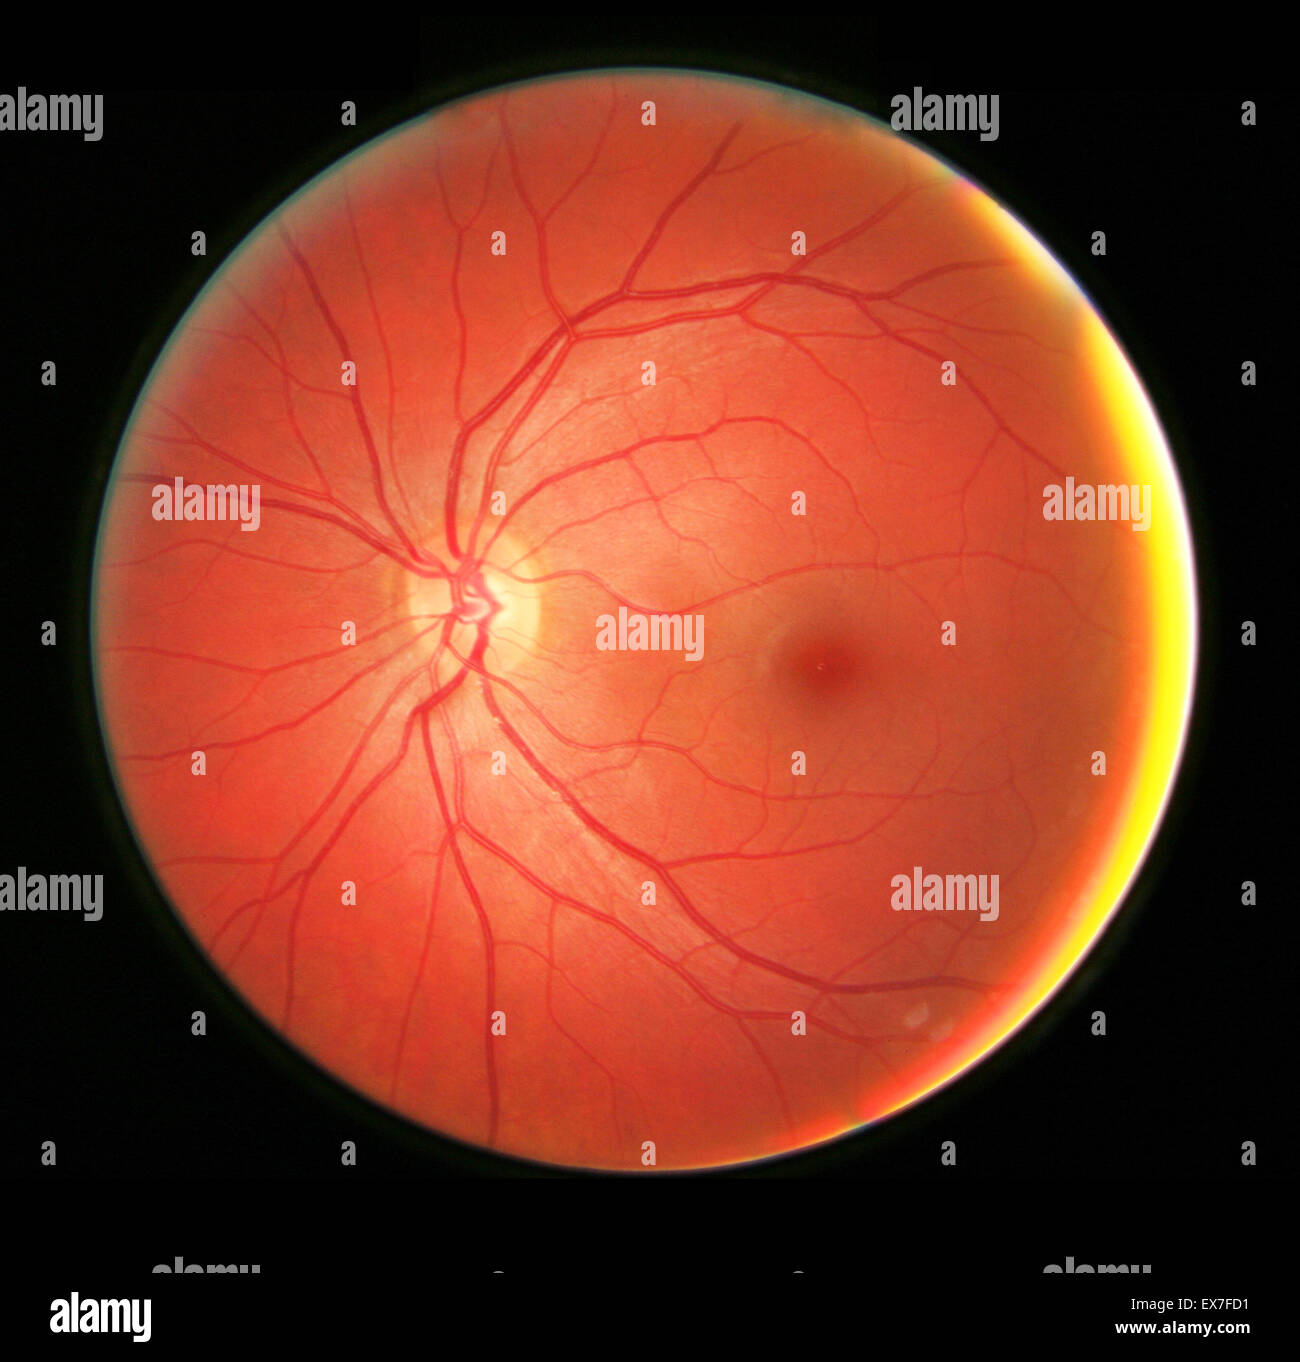 Fundus Of The Eye Stock Photos & Fundus Of The Eye Stock Images - Alamy